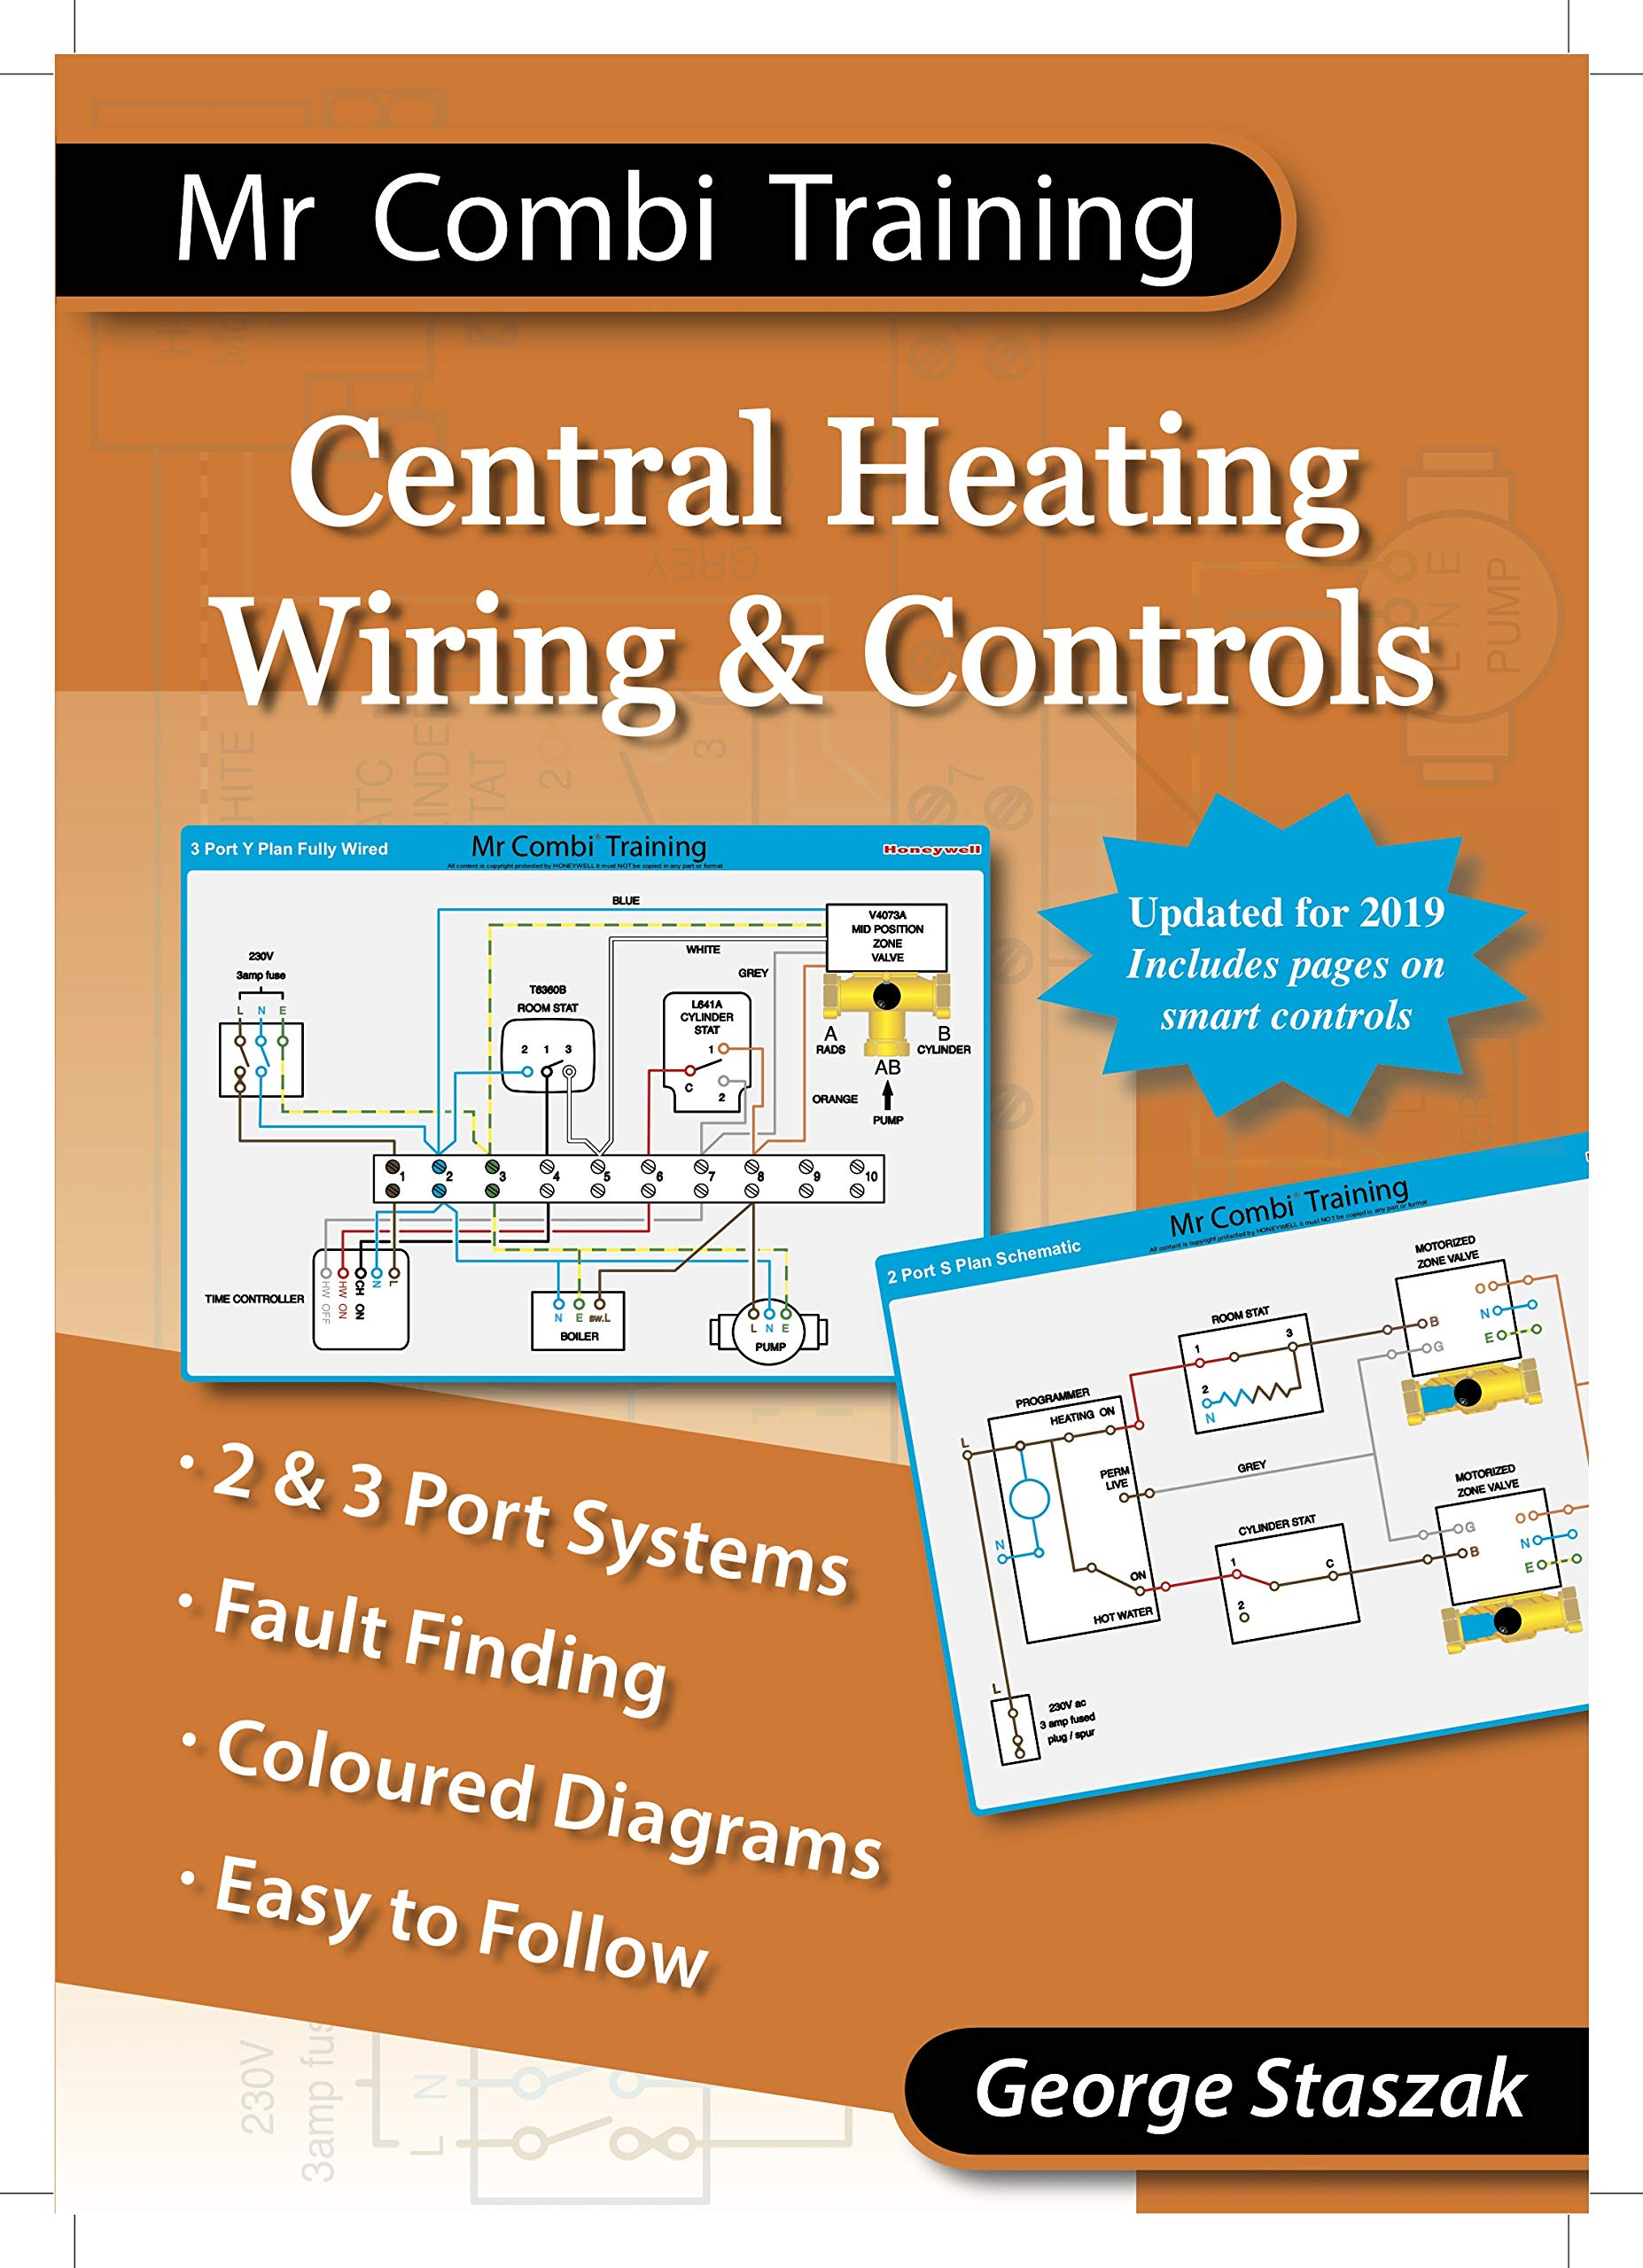 Marvelous Central Heating Wiring Controls Amazon Co Uk George Staszak Wiring Digital Resources Indicompassionincorg